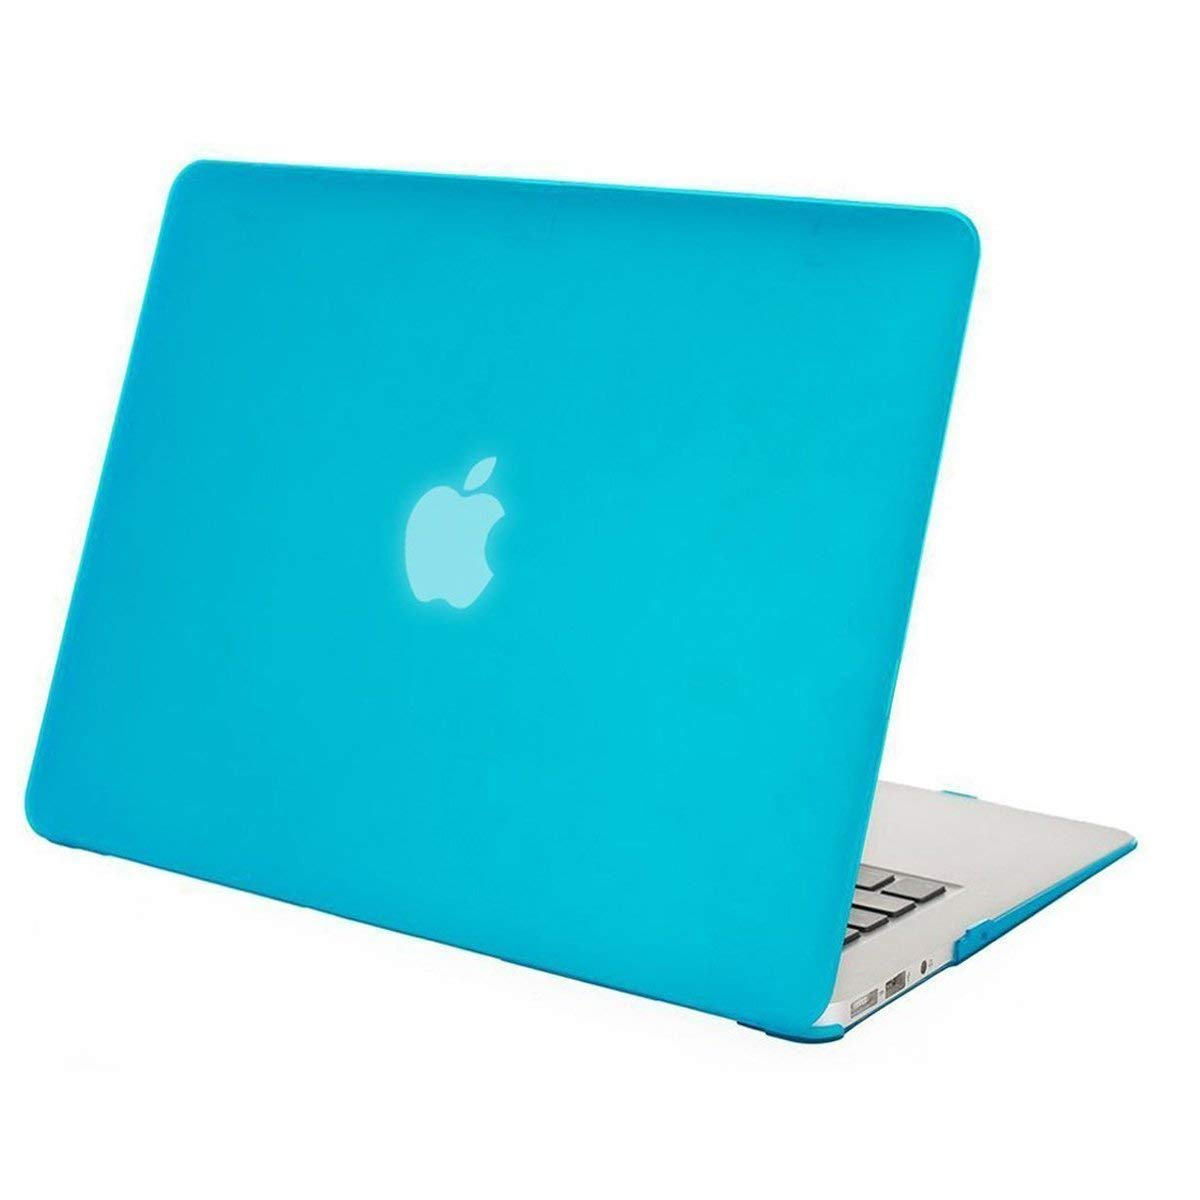 "Codegen Apple 13"" 13 inc Macbook Pro A1706 A1708 Mavi Kılıf Kapak CMPT-133LB"